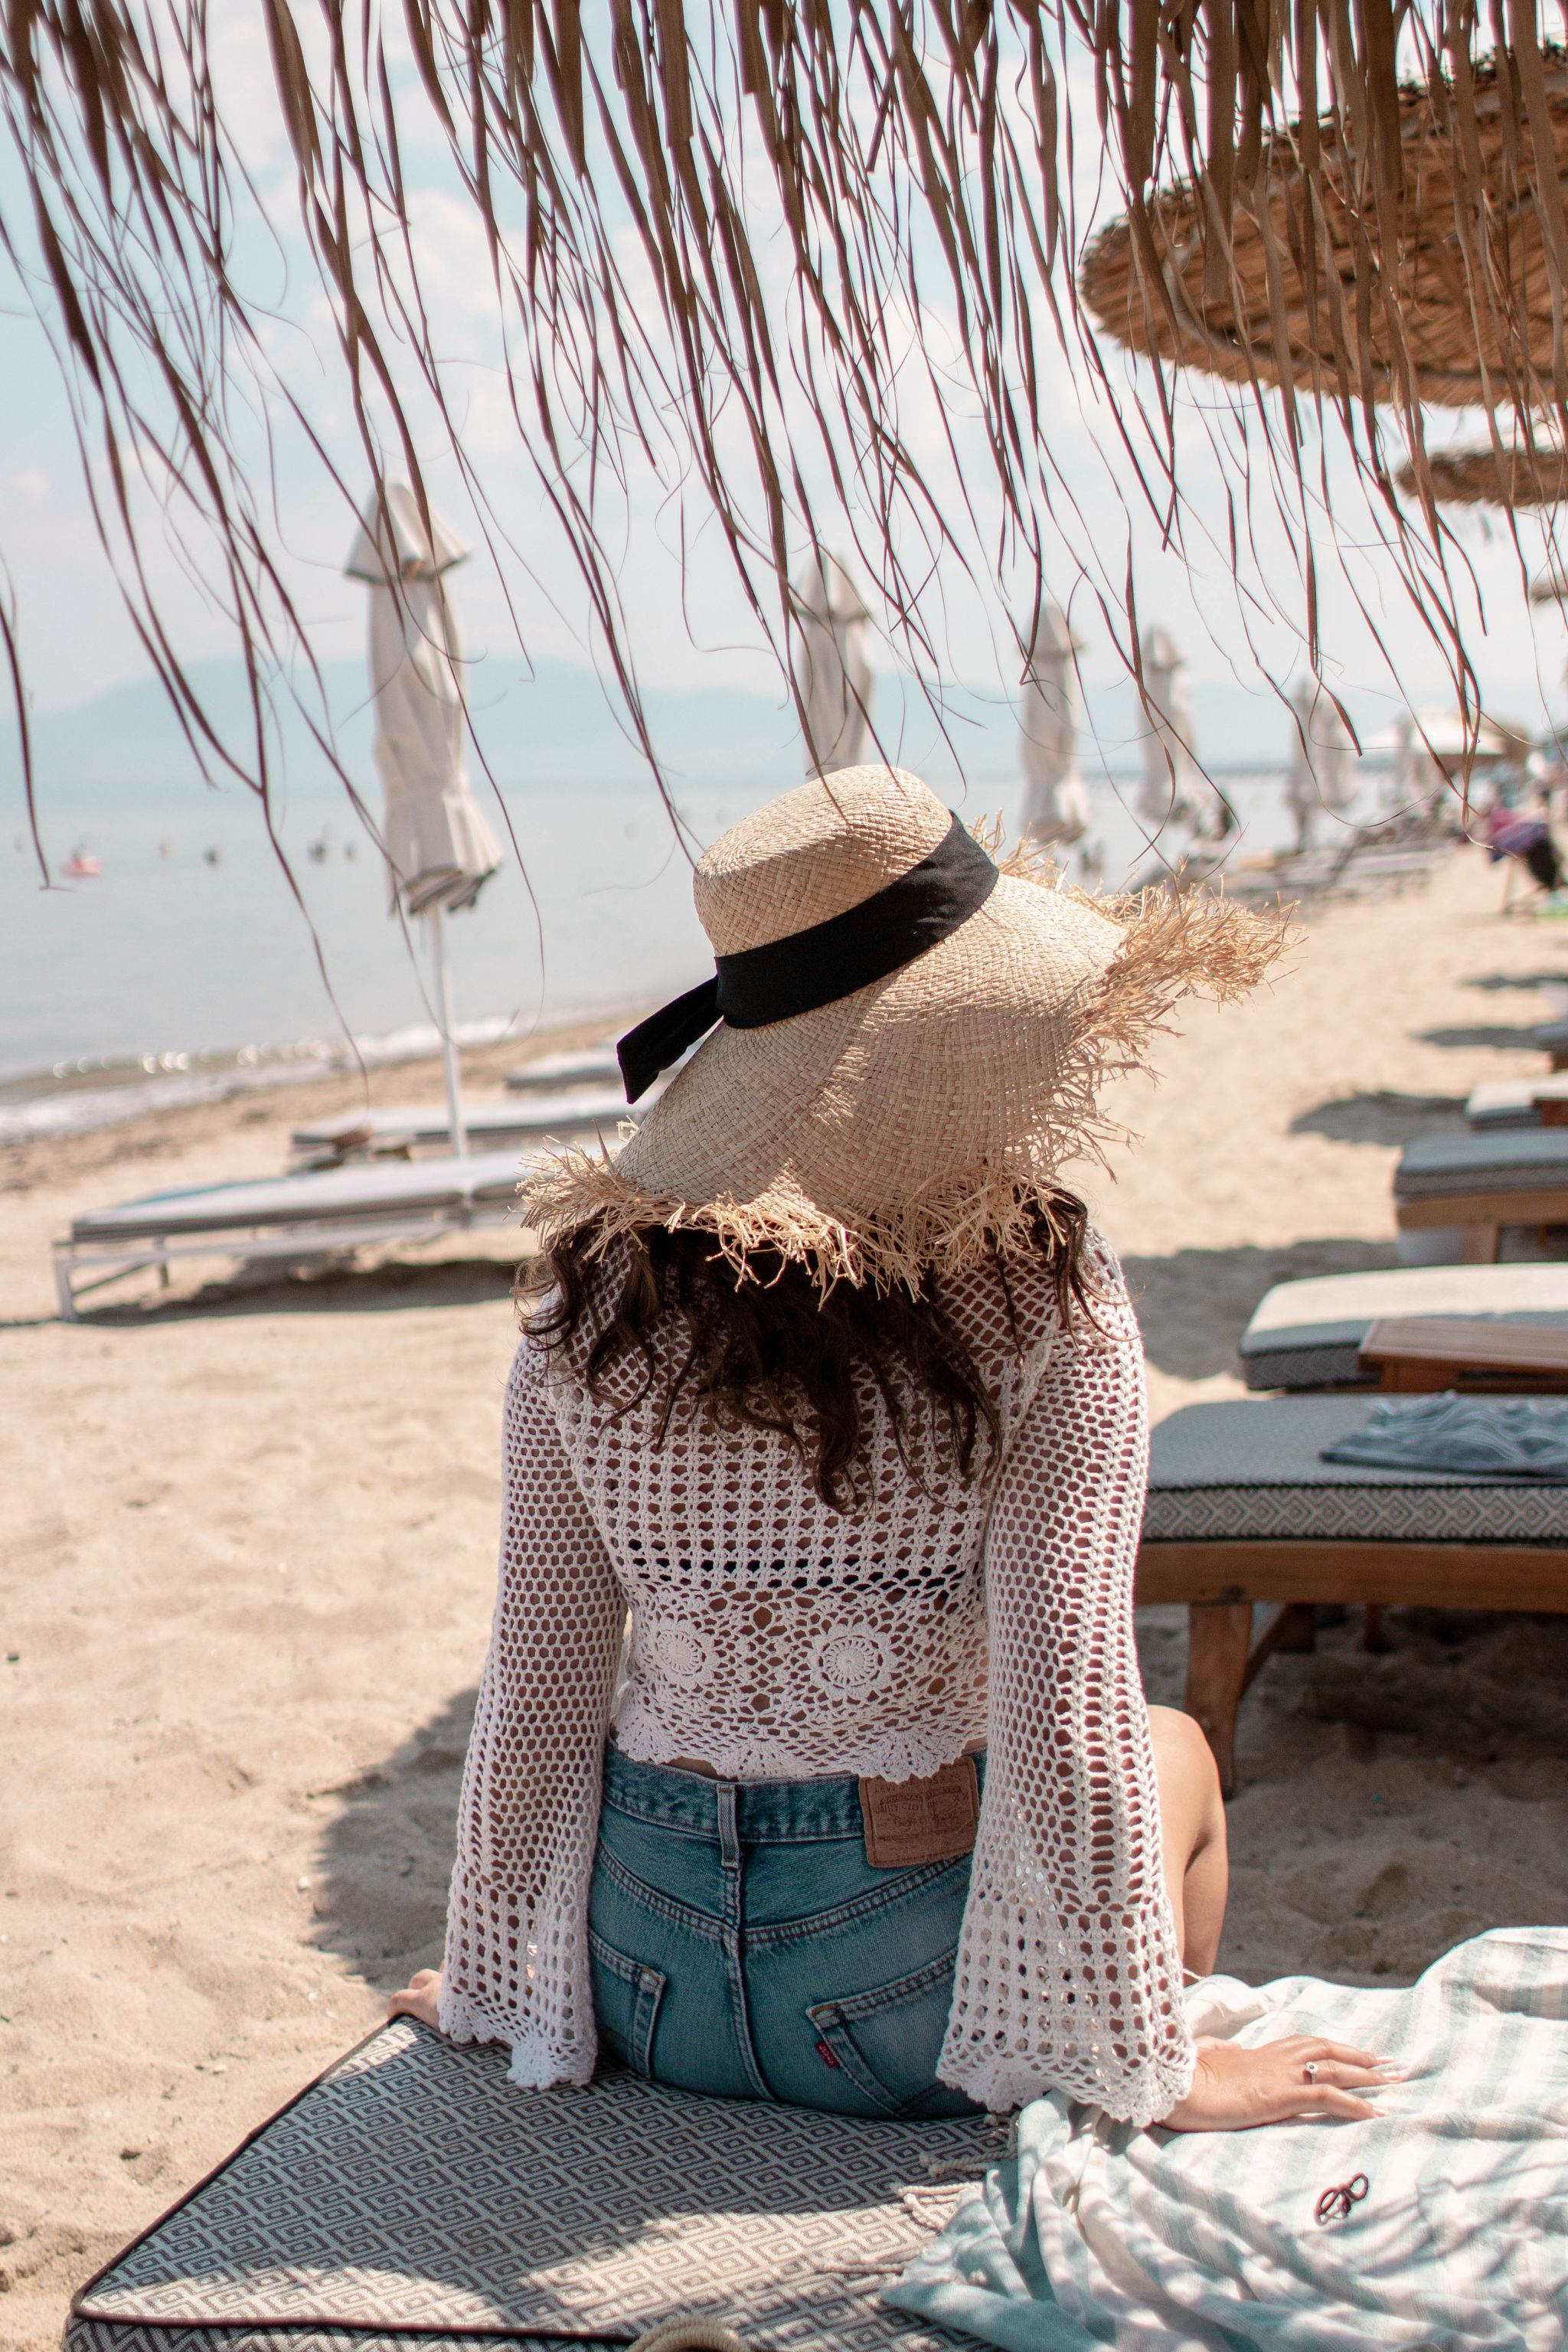 hannah layford travel photography tourist board discover greece thessaloniki agia triada beach